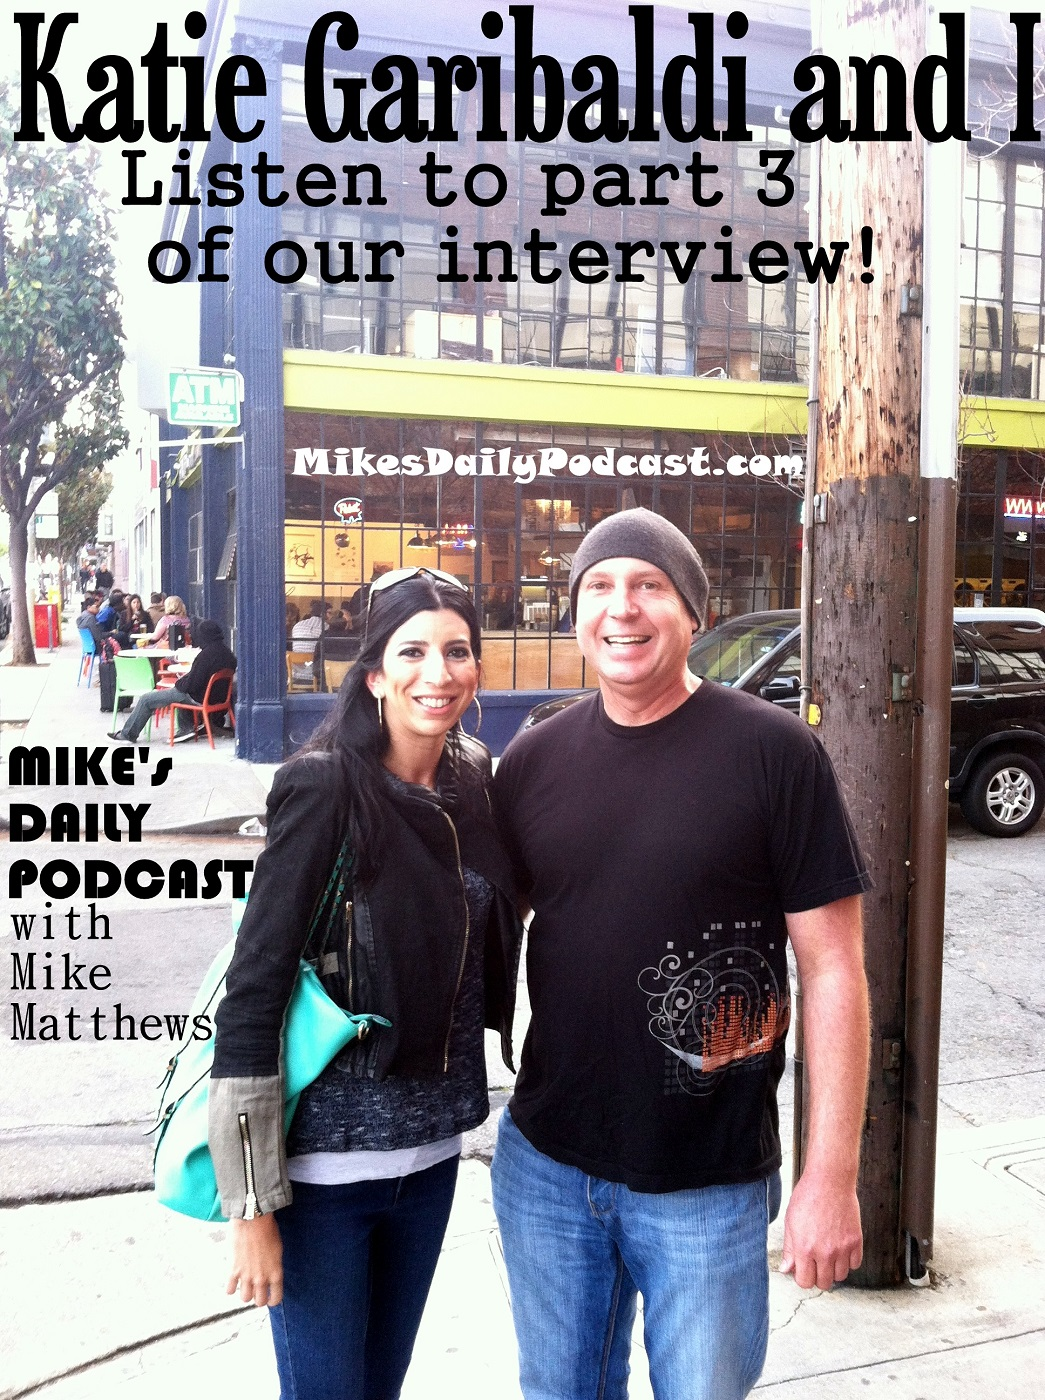 MIKEs DAILY PODCAST 4-2-15 Katie Garibaldi Brain Wash Cafe